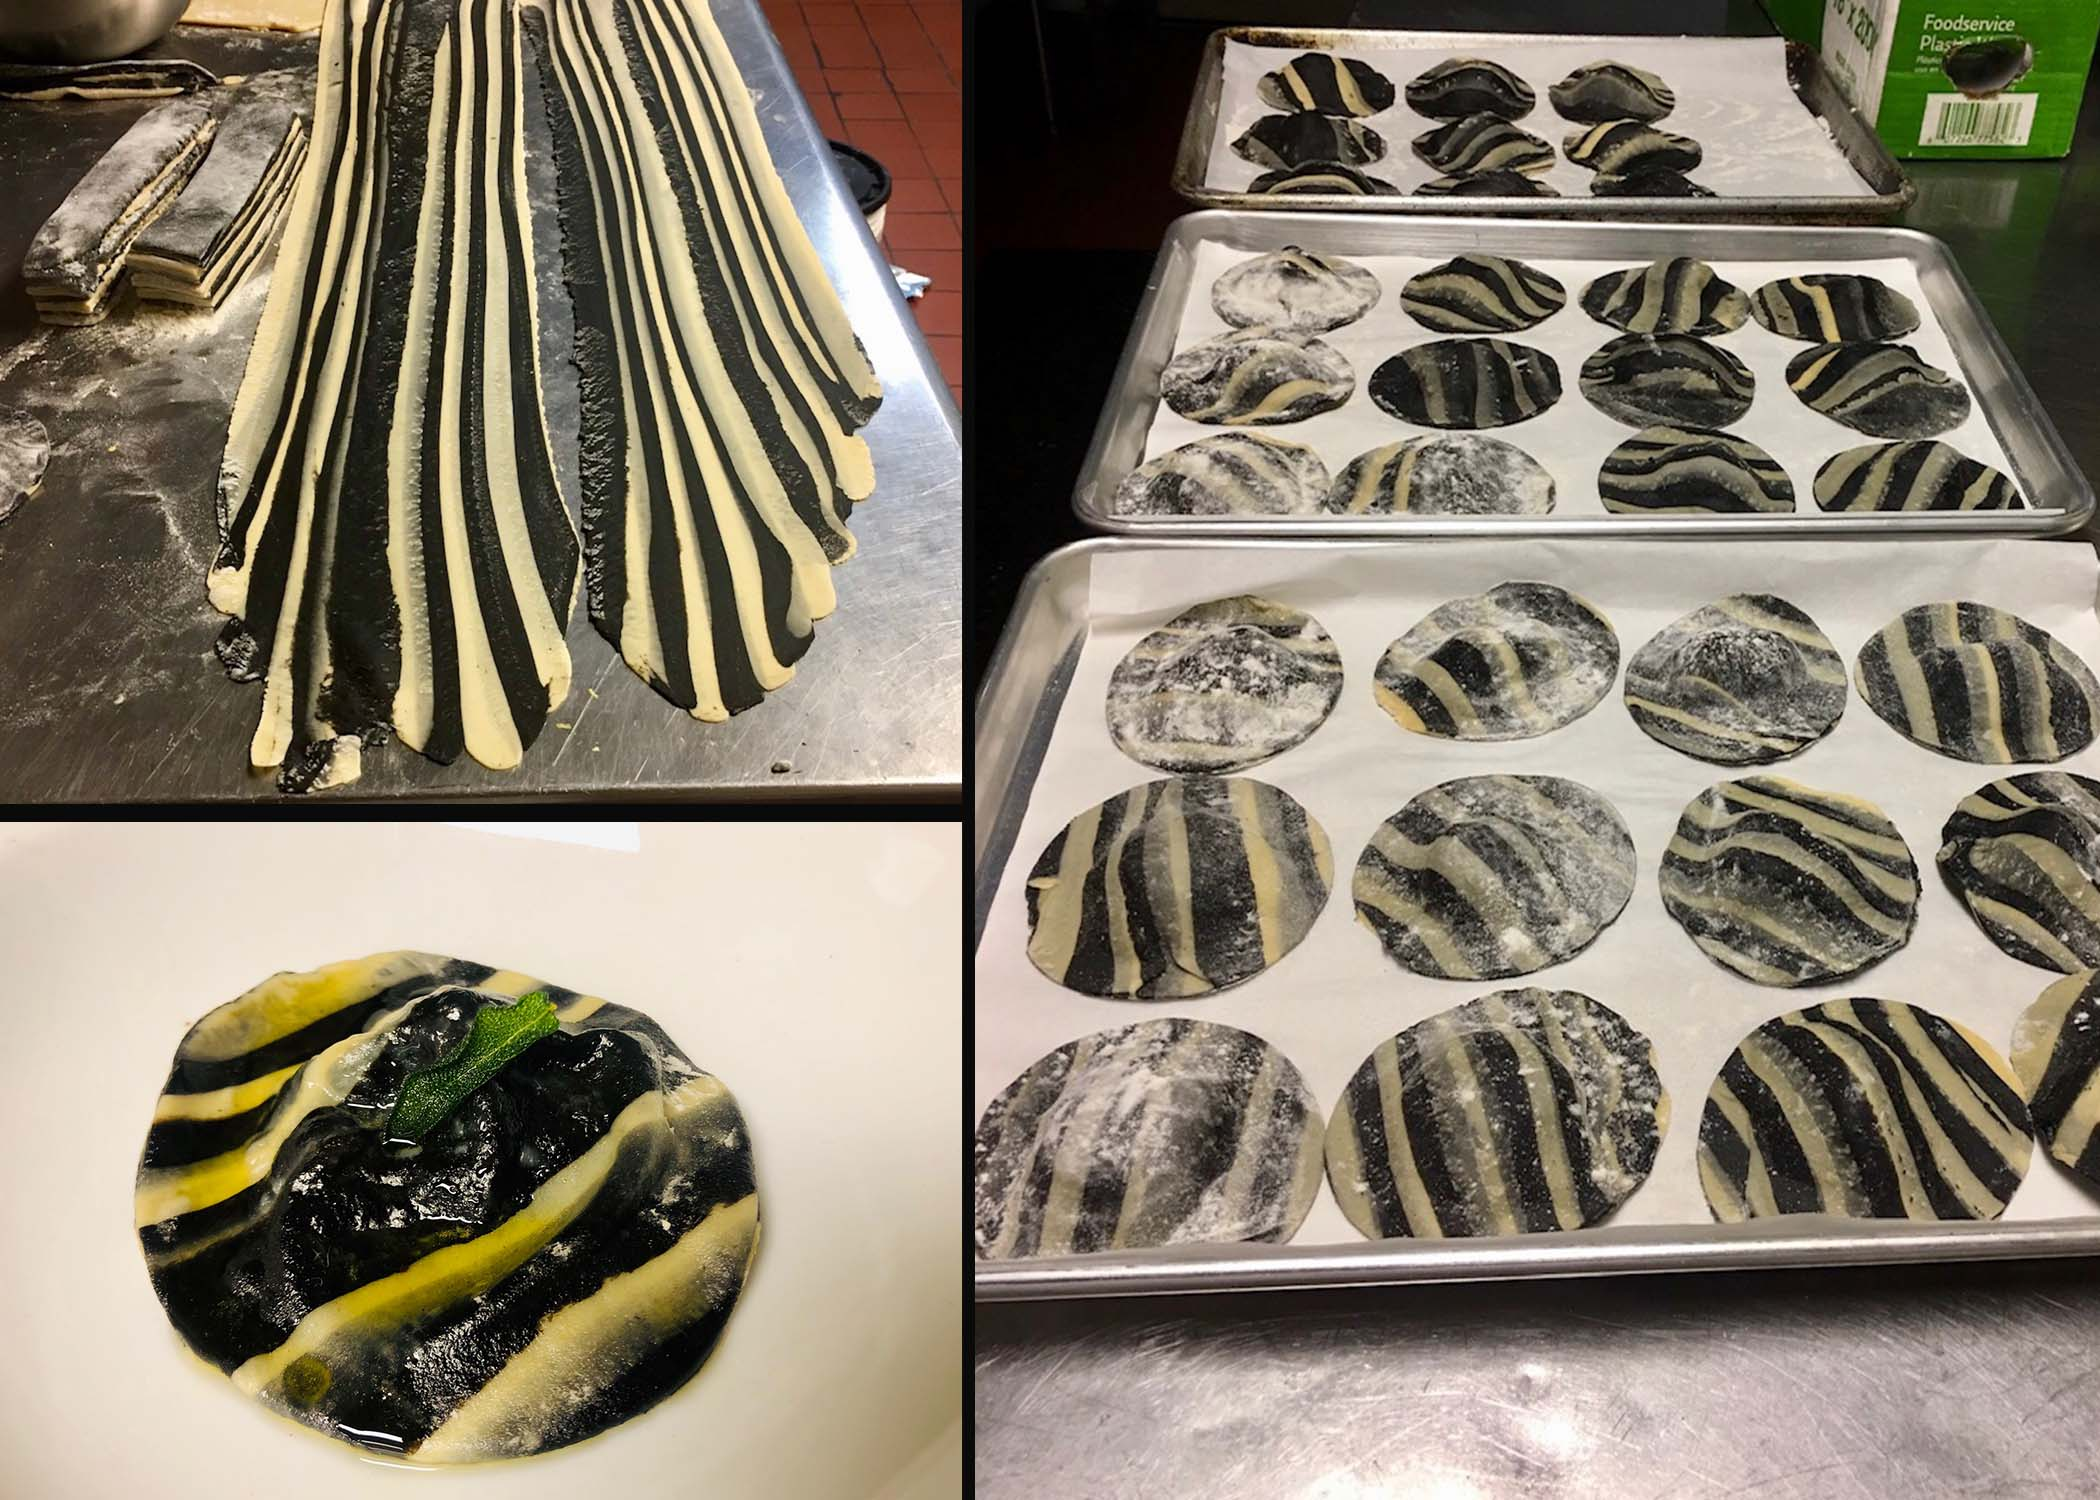 Lobster stuffed striped ravioli with sage brown butter and crispy sage leaf